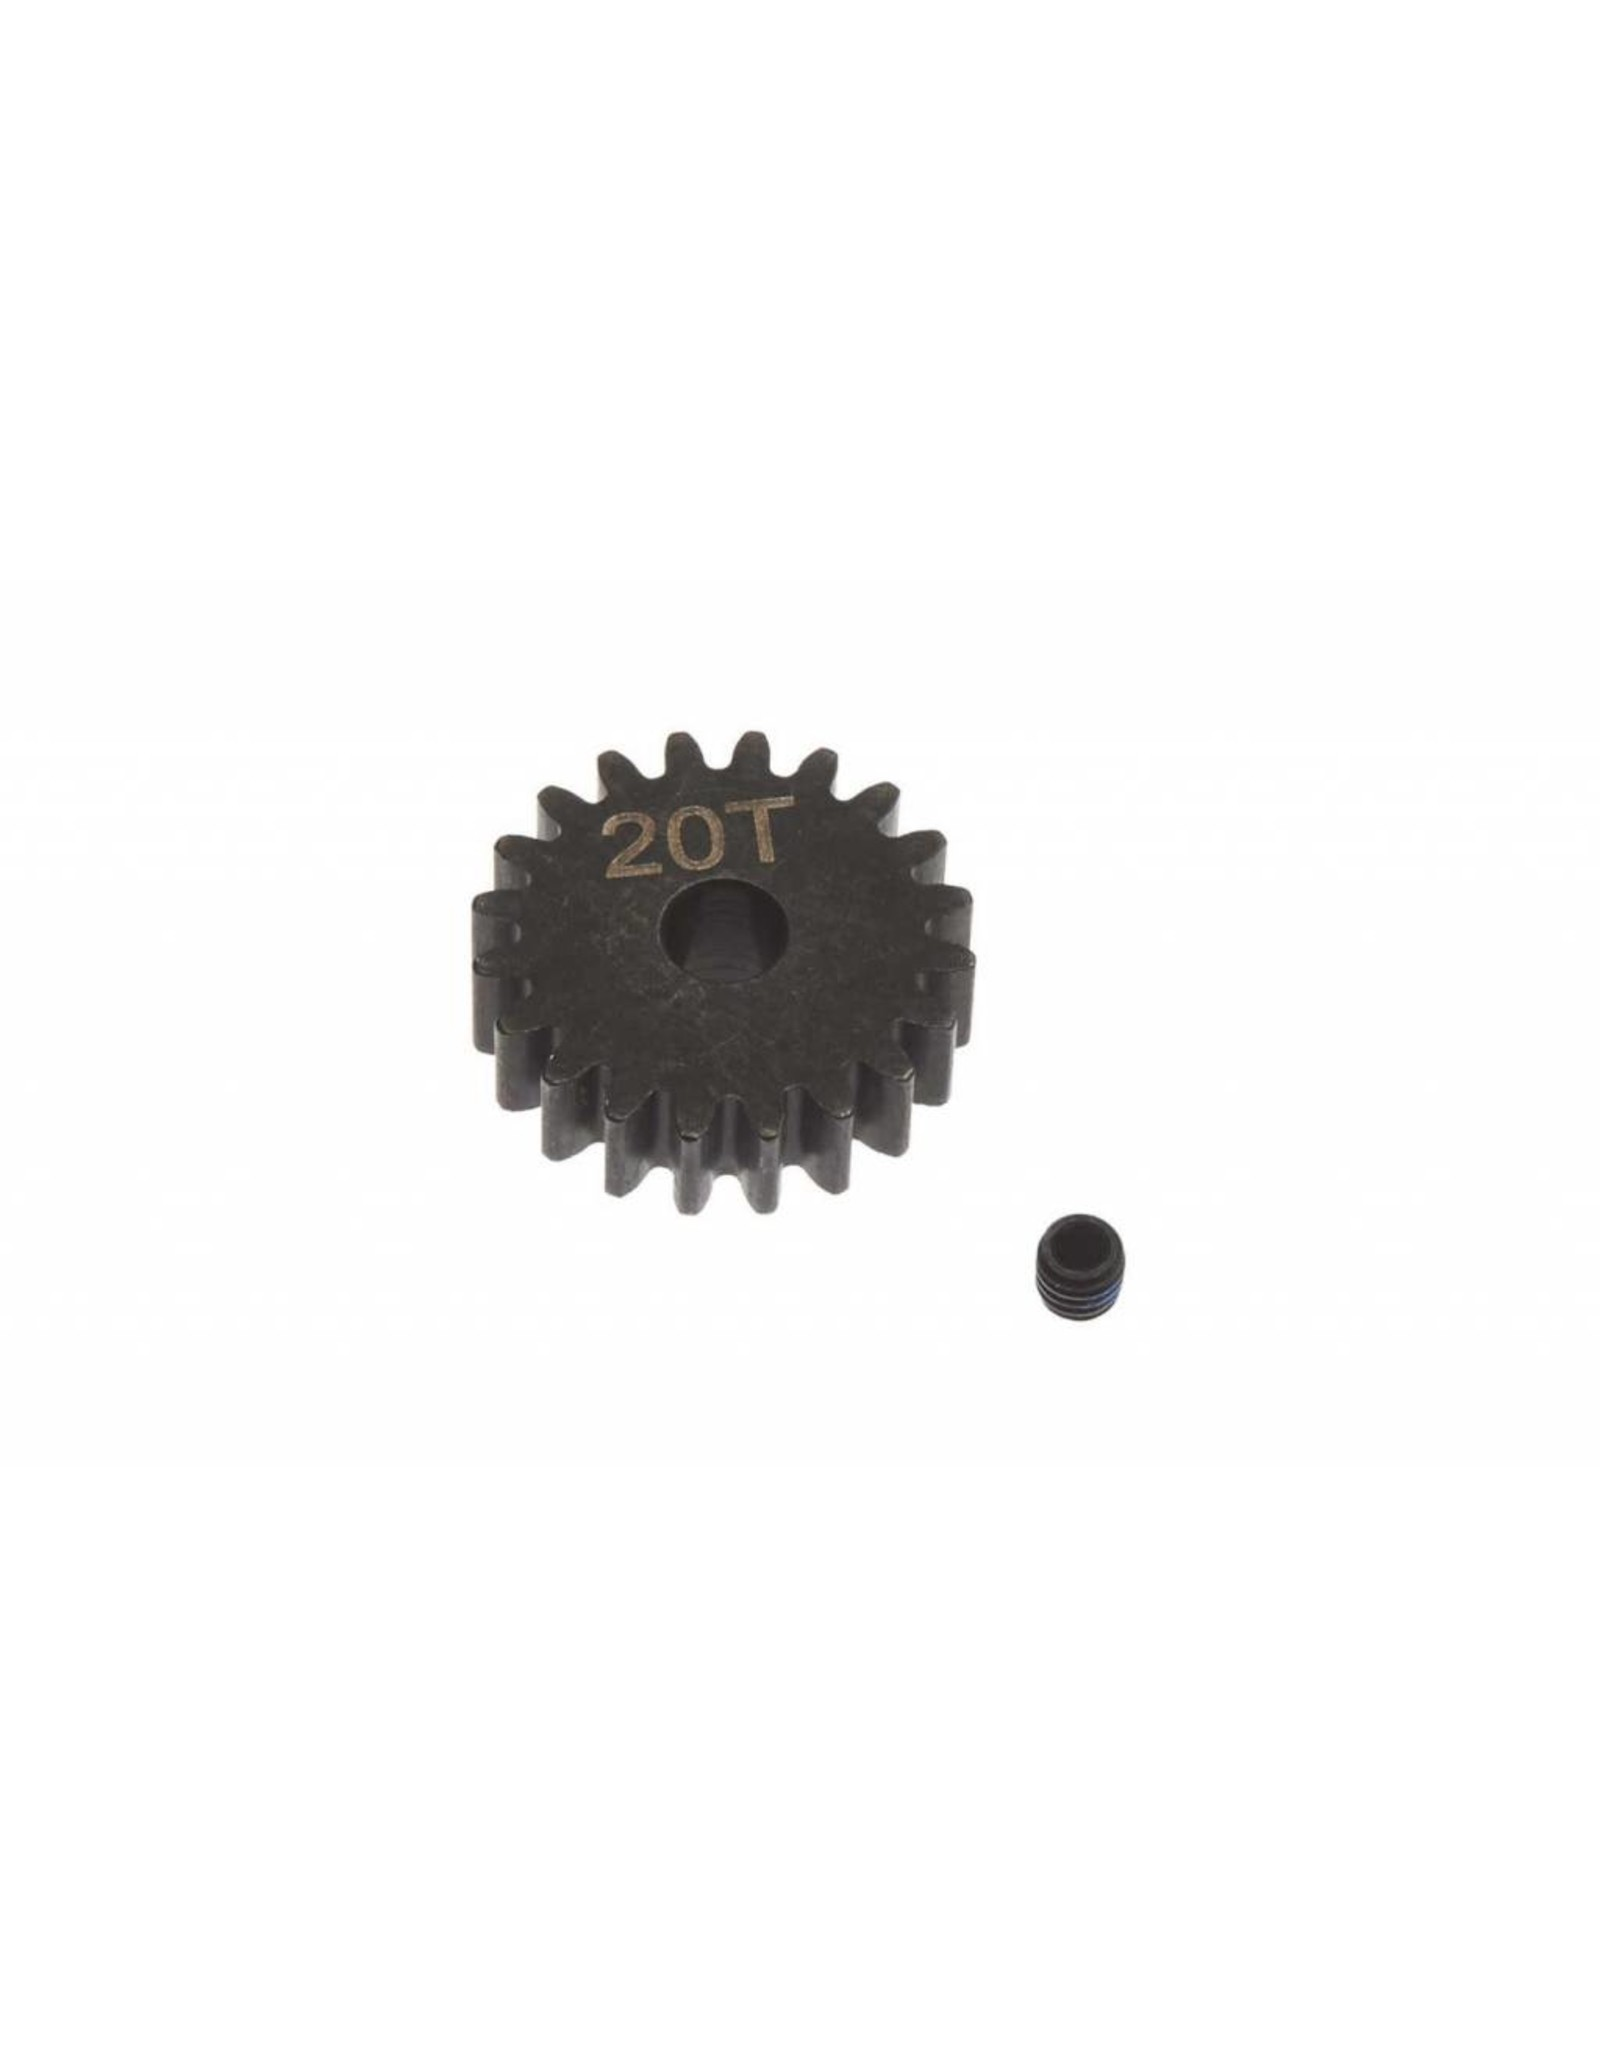 Arrma ARRMA Pinion Gear 20T Mod 1 5mm  (AR)